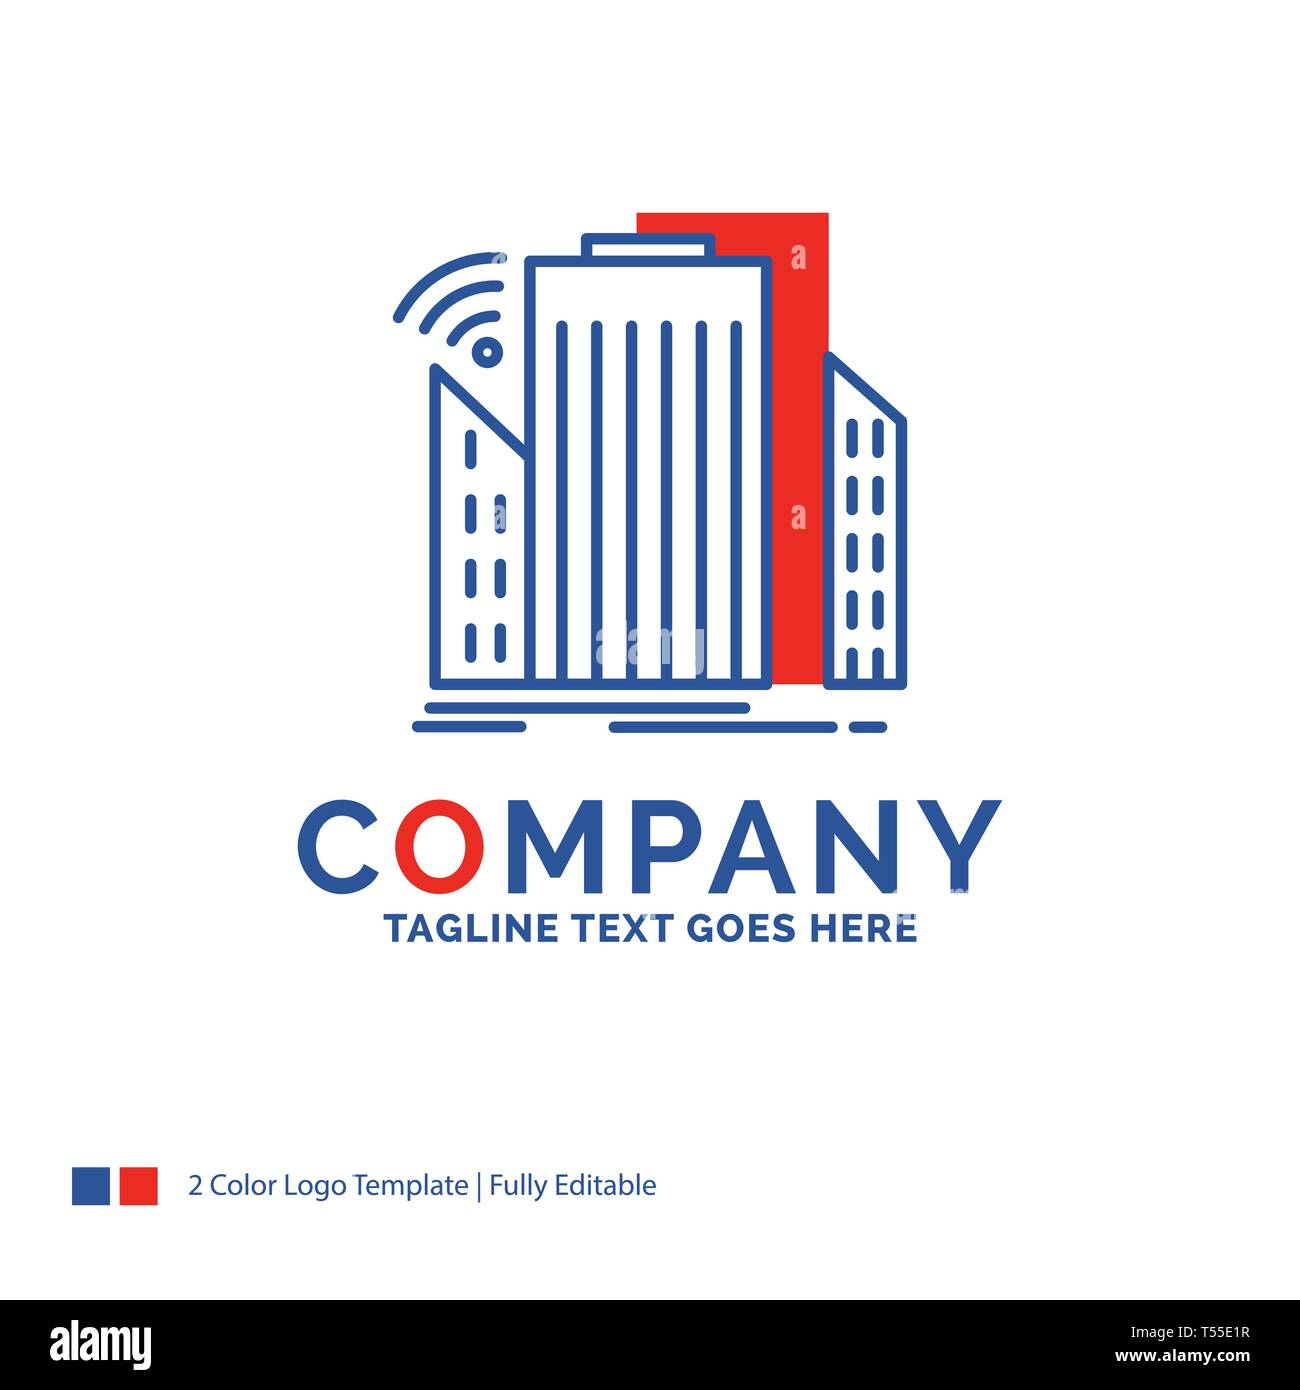 Company Name Logo Design For Buildings, city, sensor, smart, urban. Blue and red Brand Name Design with place for Tagline. Abstract Creative Logo temp - Stock Image